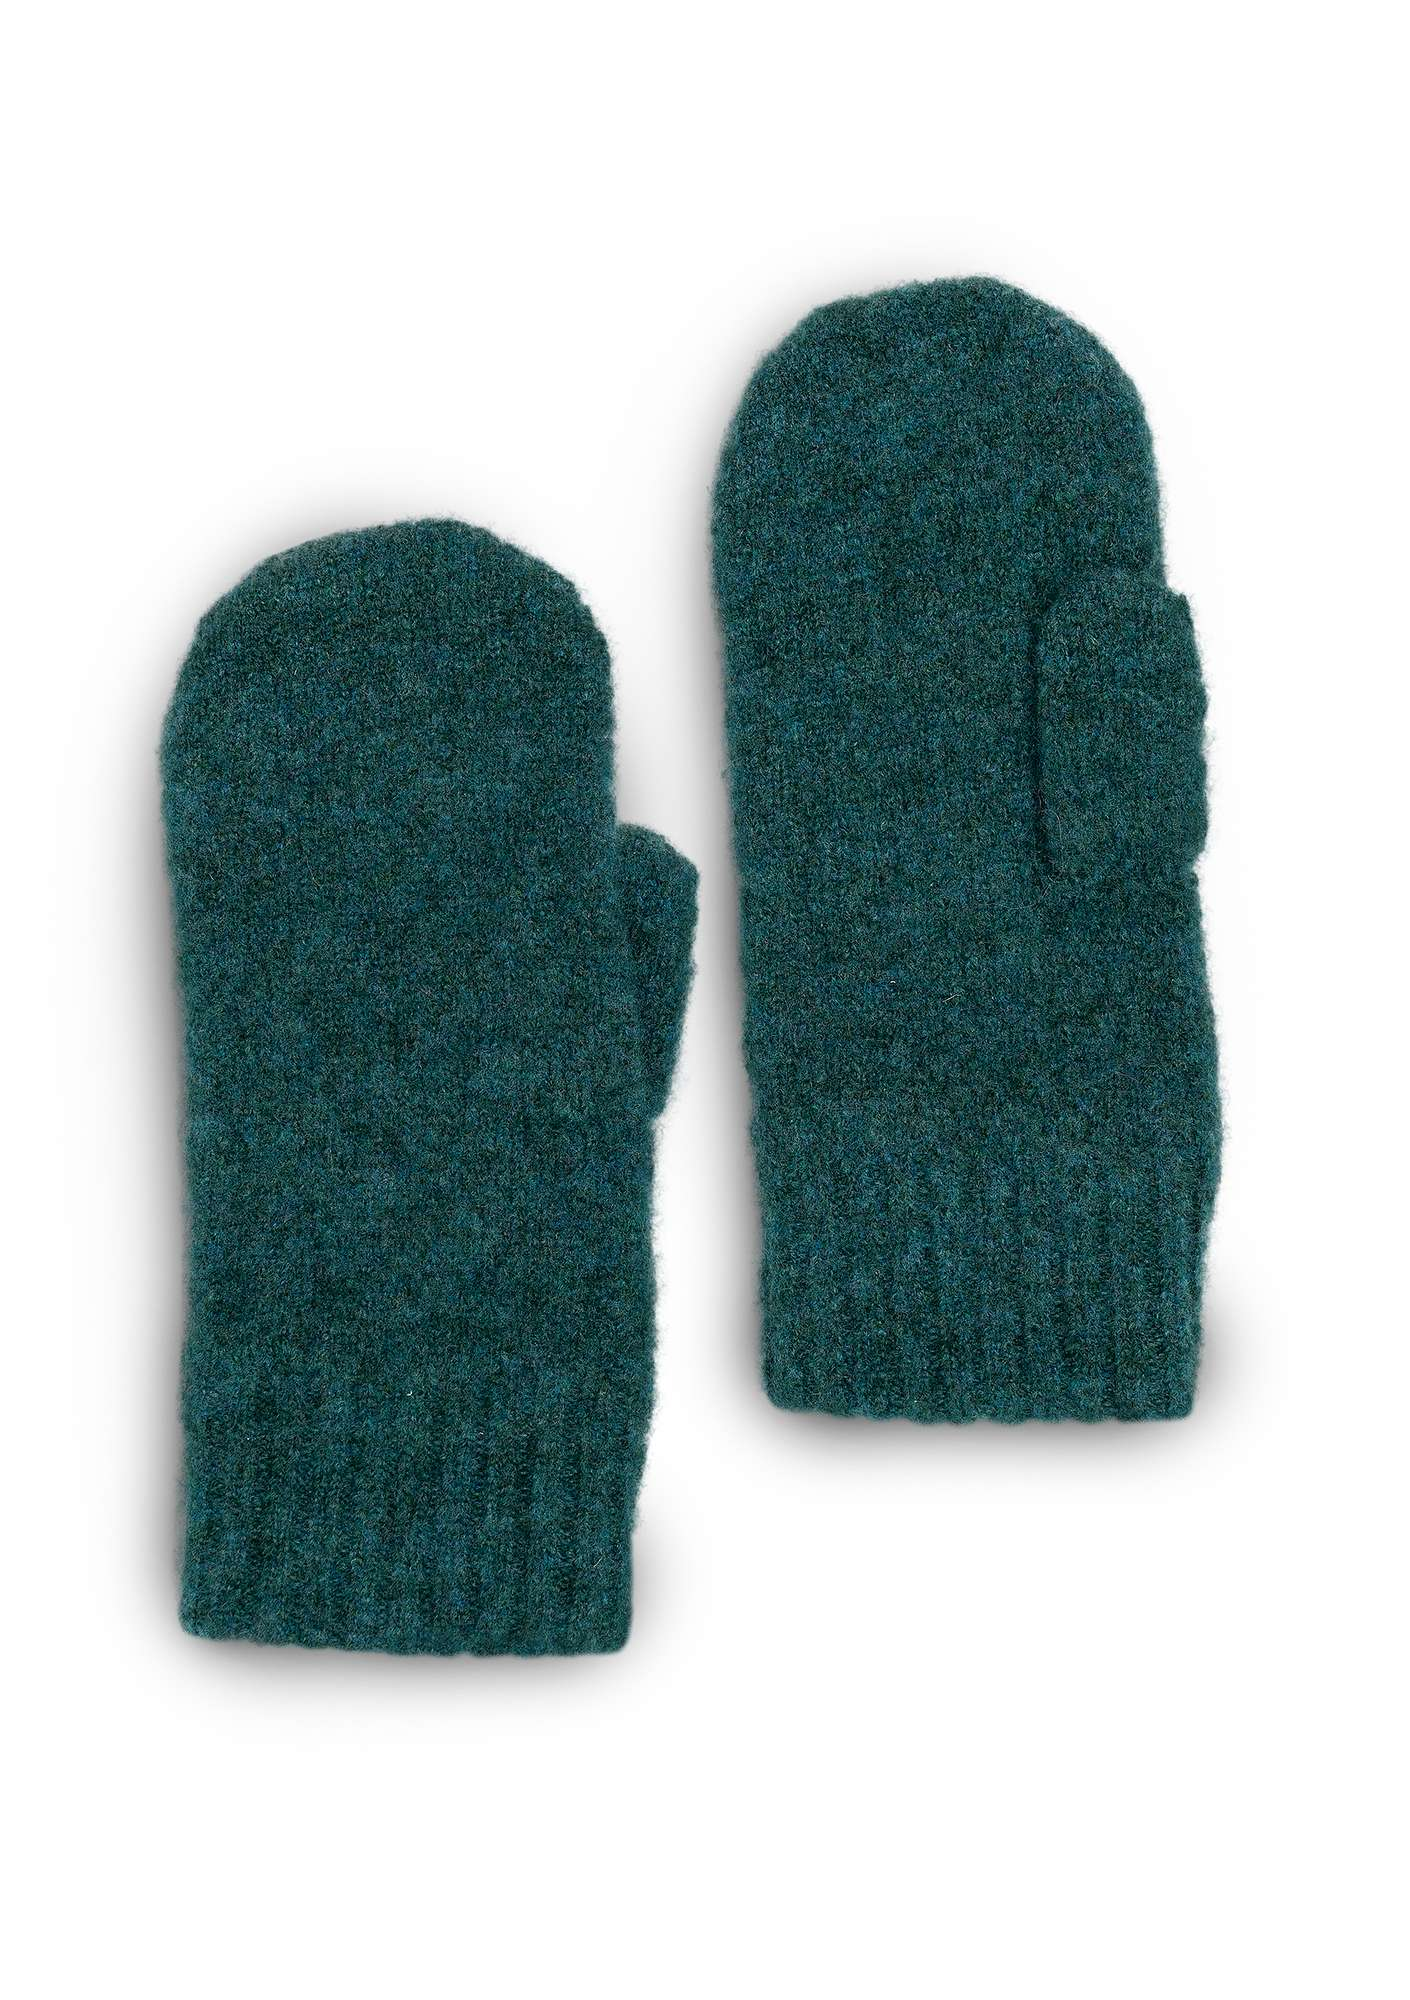 Knitted mittens in a recycled cashmere blend bottle green